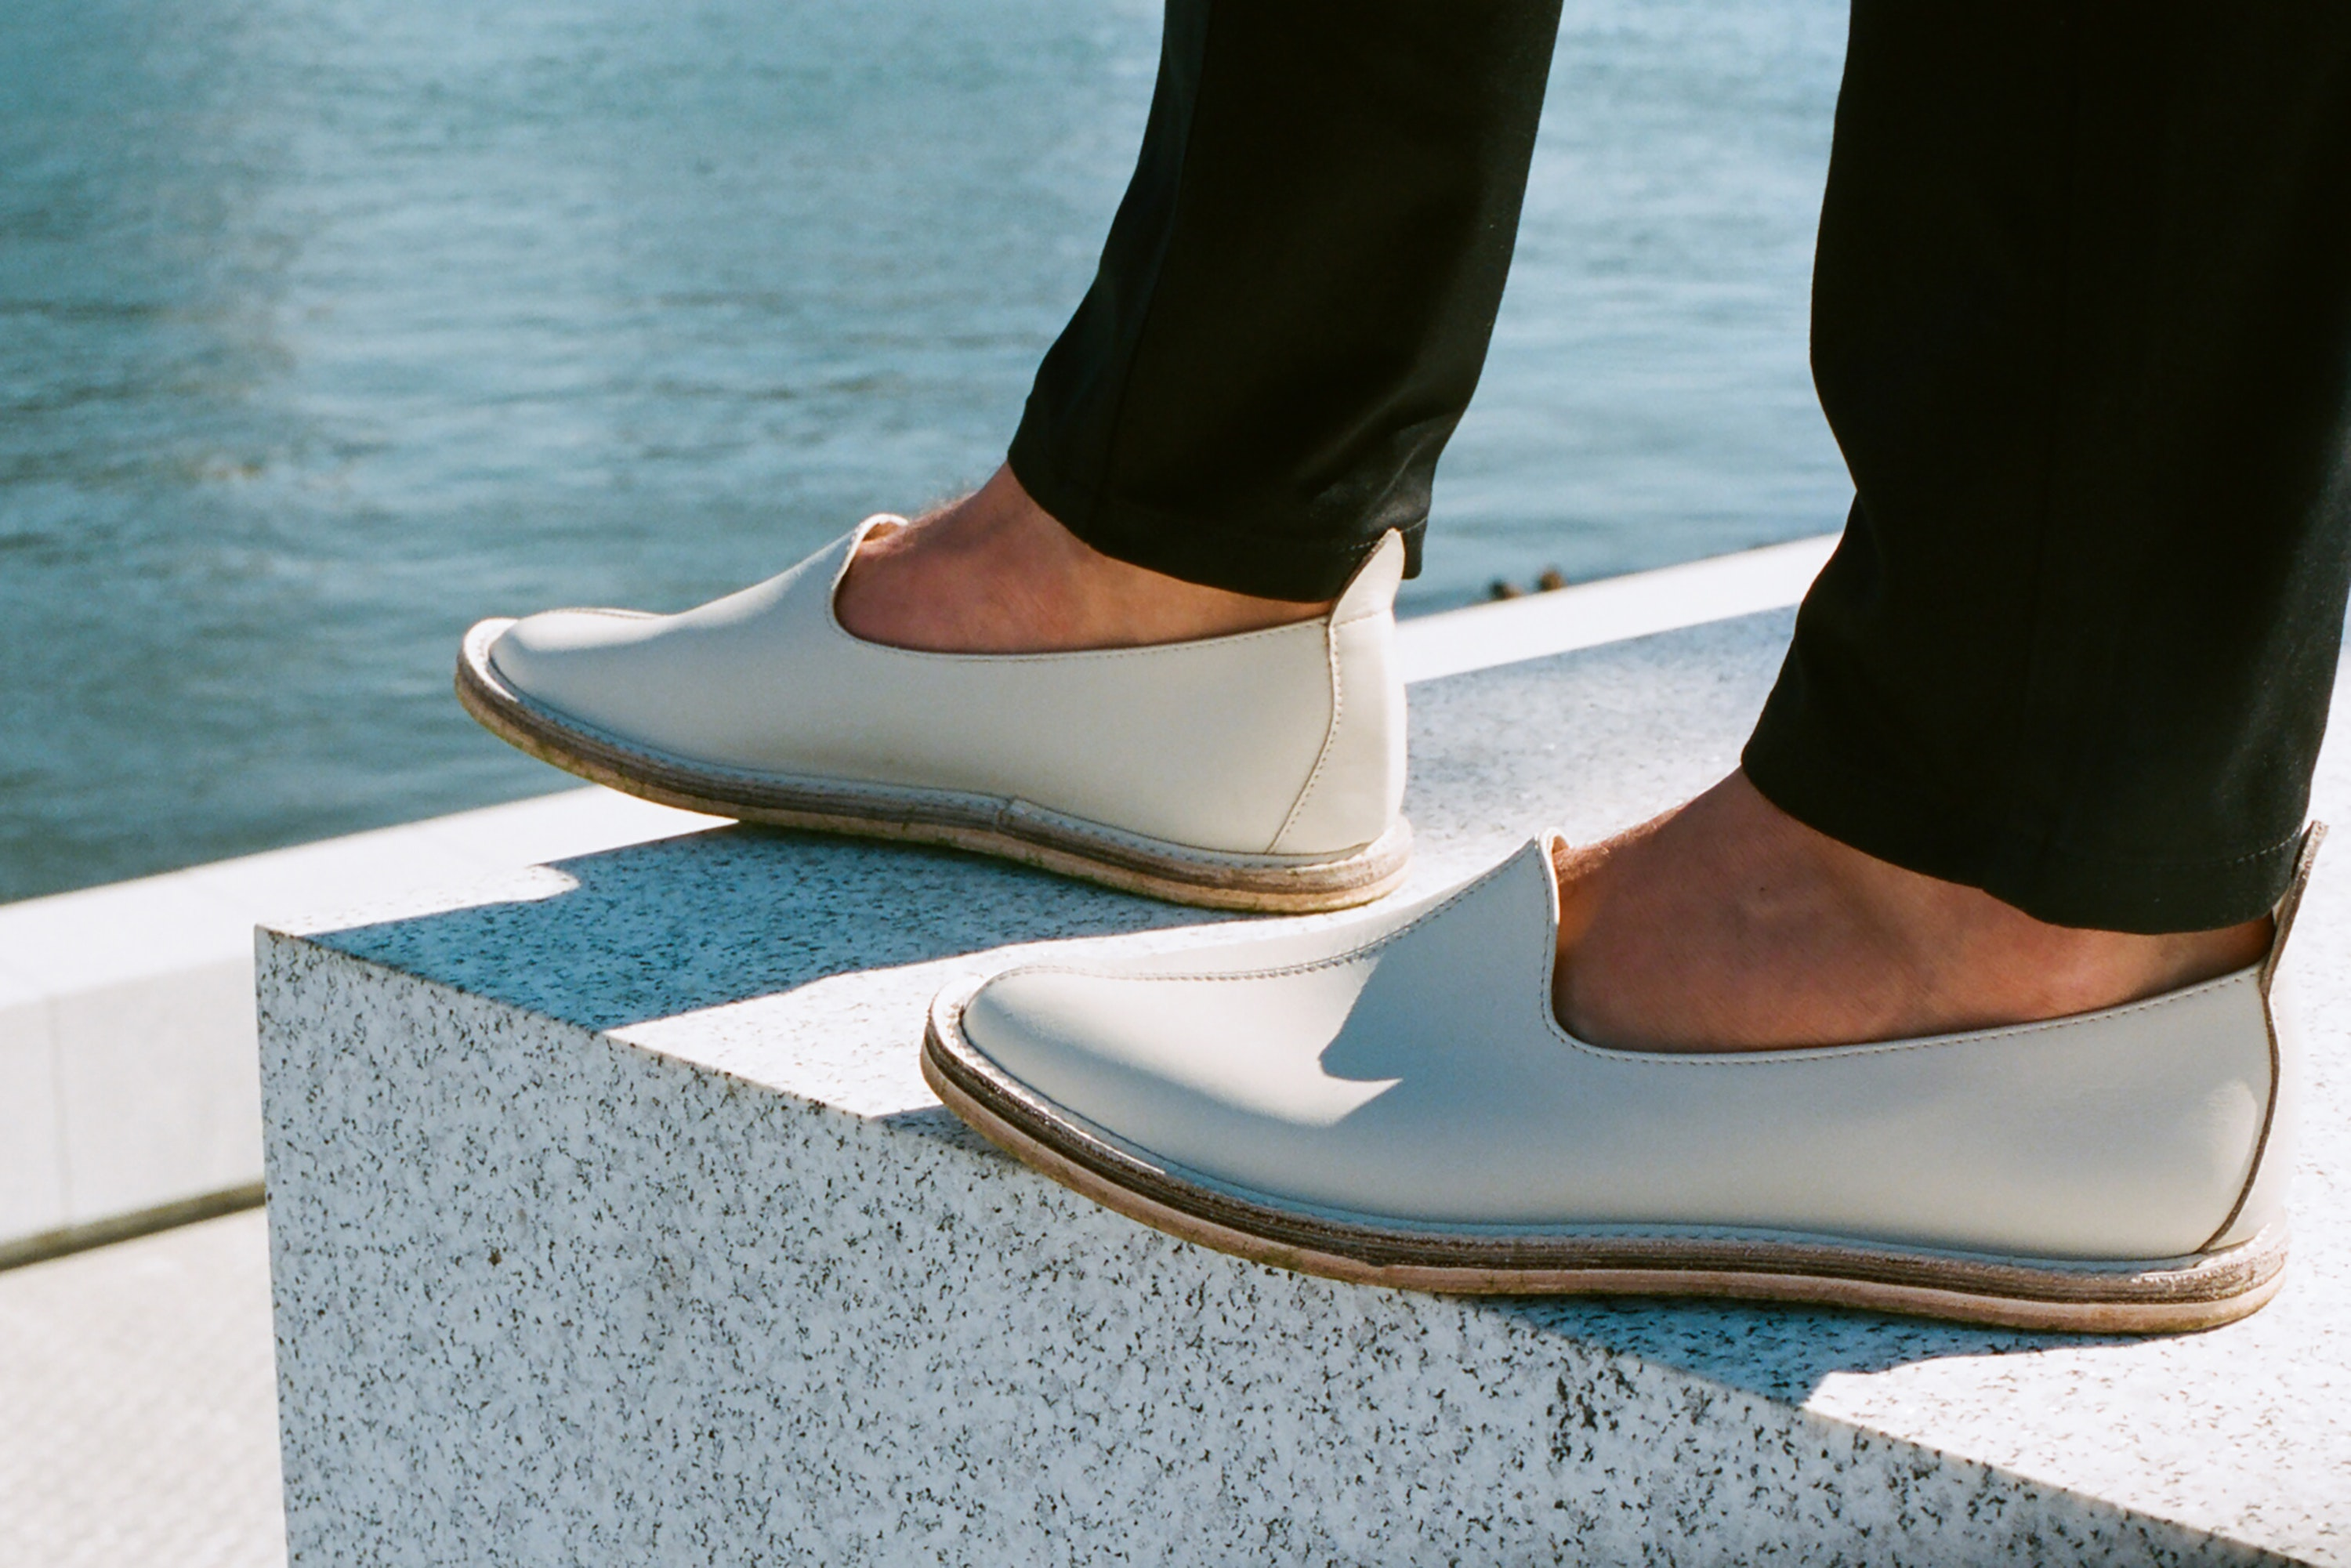 The slip-on design of Vayarta's mocassins makes them ideal airport shoes.